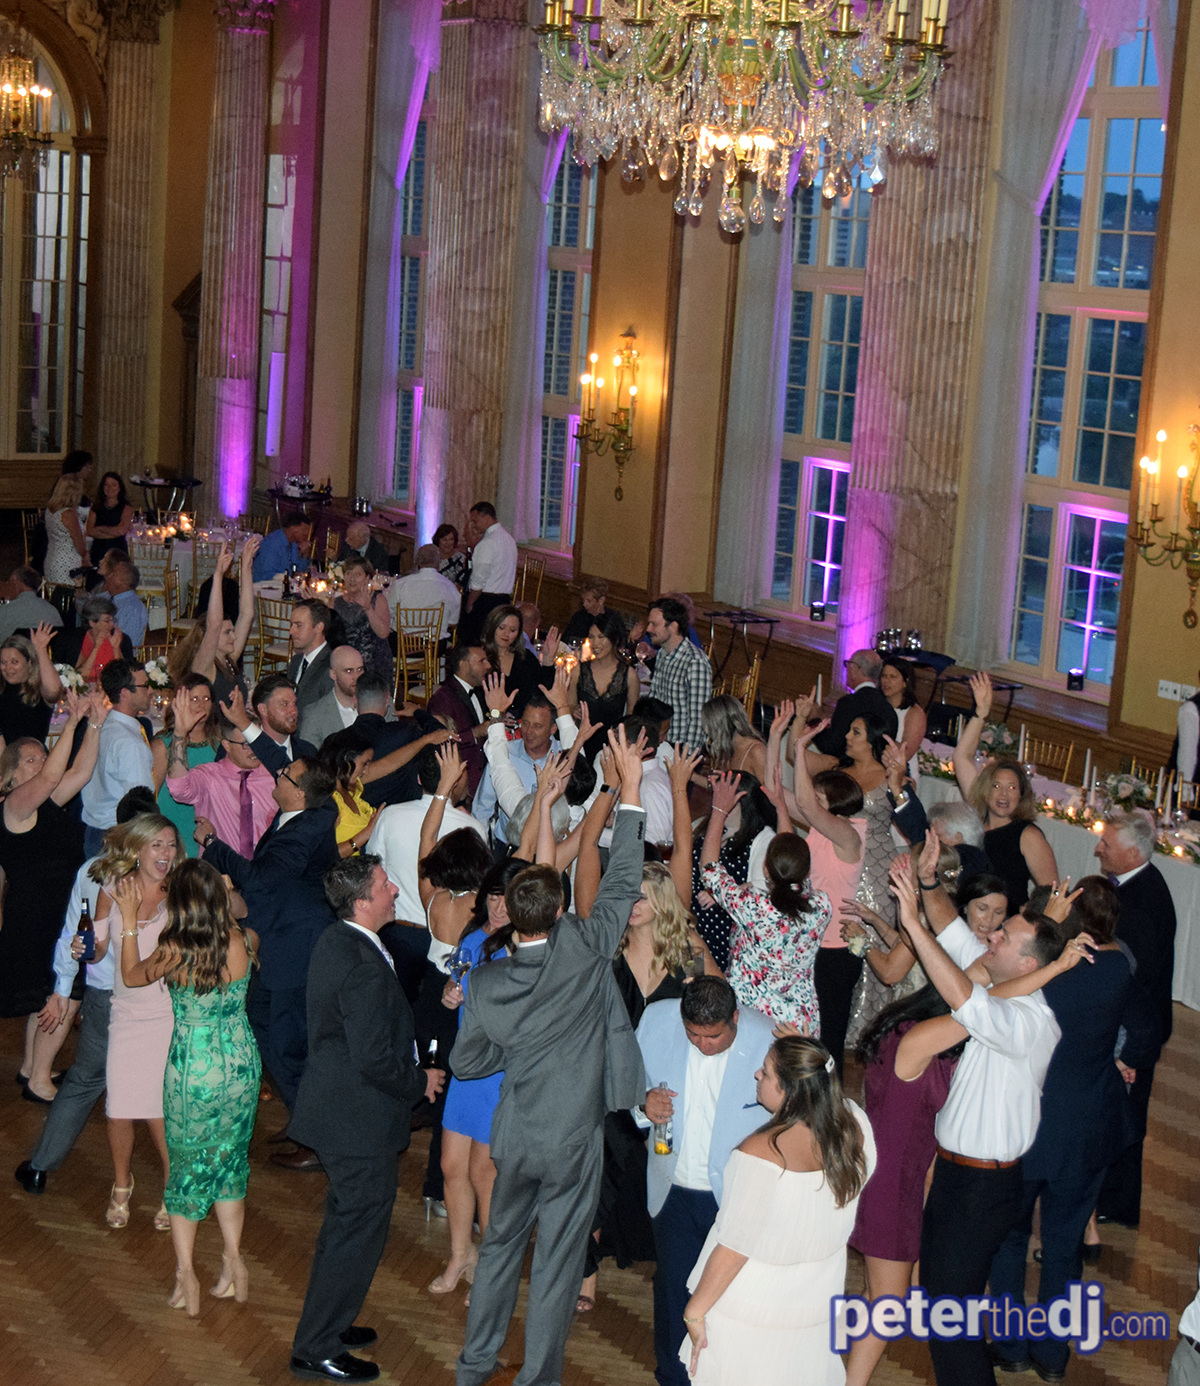 Liz and Brian's wedding reception in the Grand Ballroom at Syracuse Marriott Downtown. Photo by DJ Peter Naughton peterthedj.com July 2019.